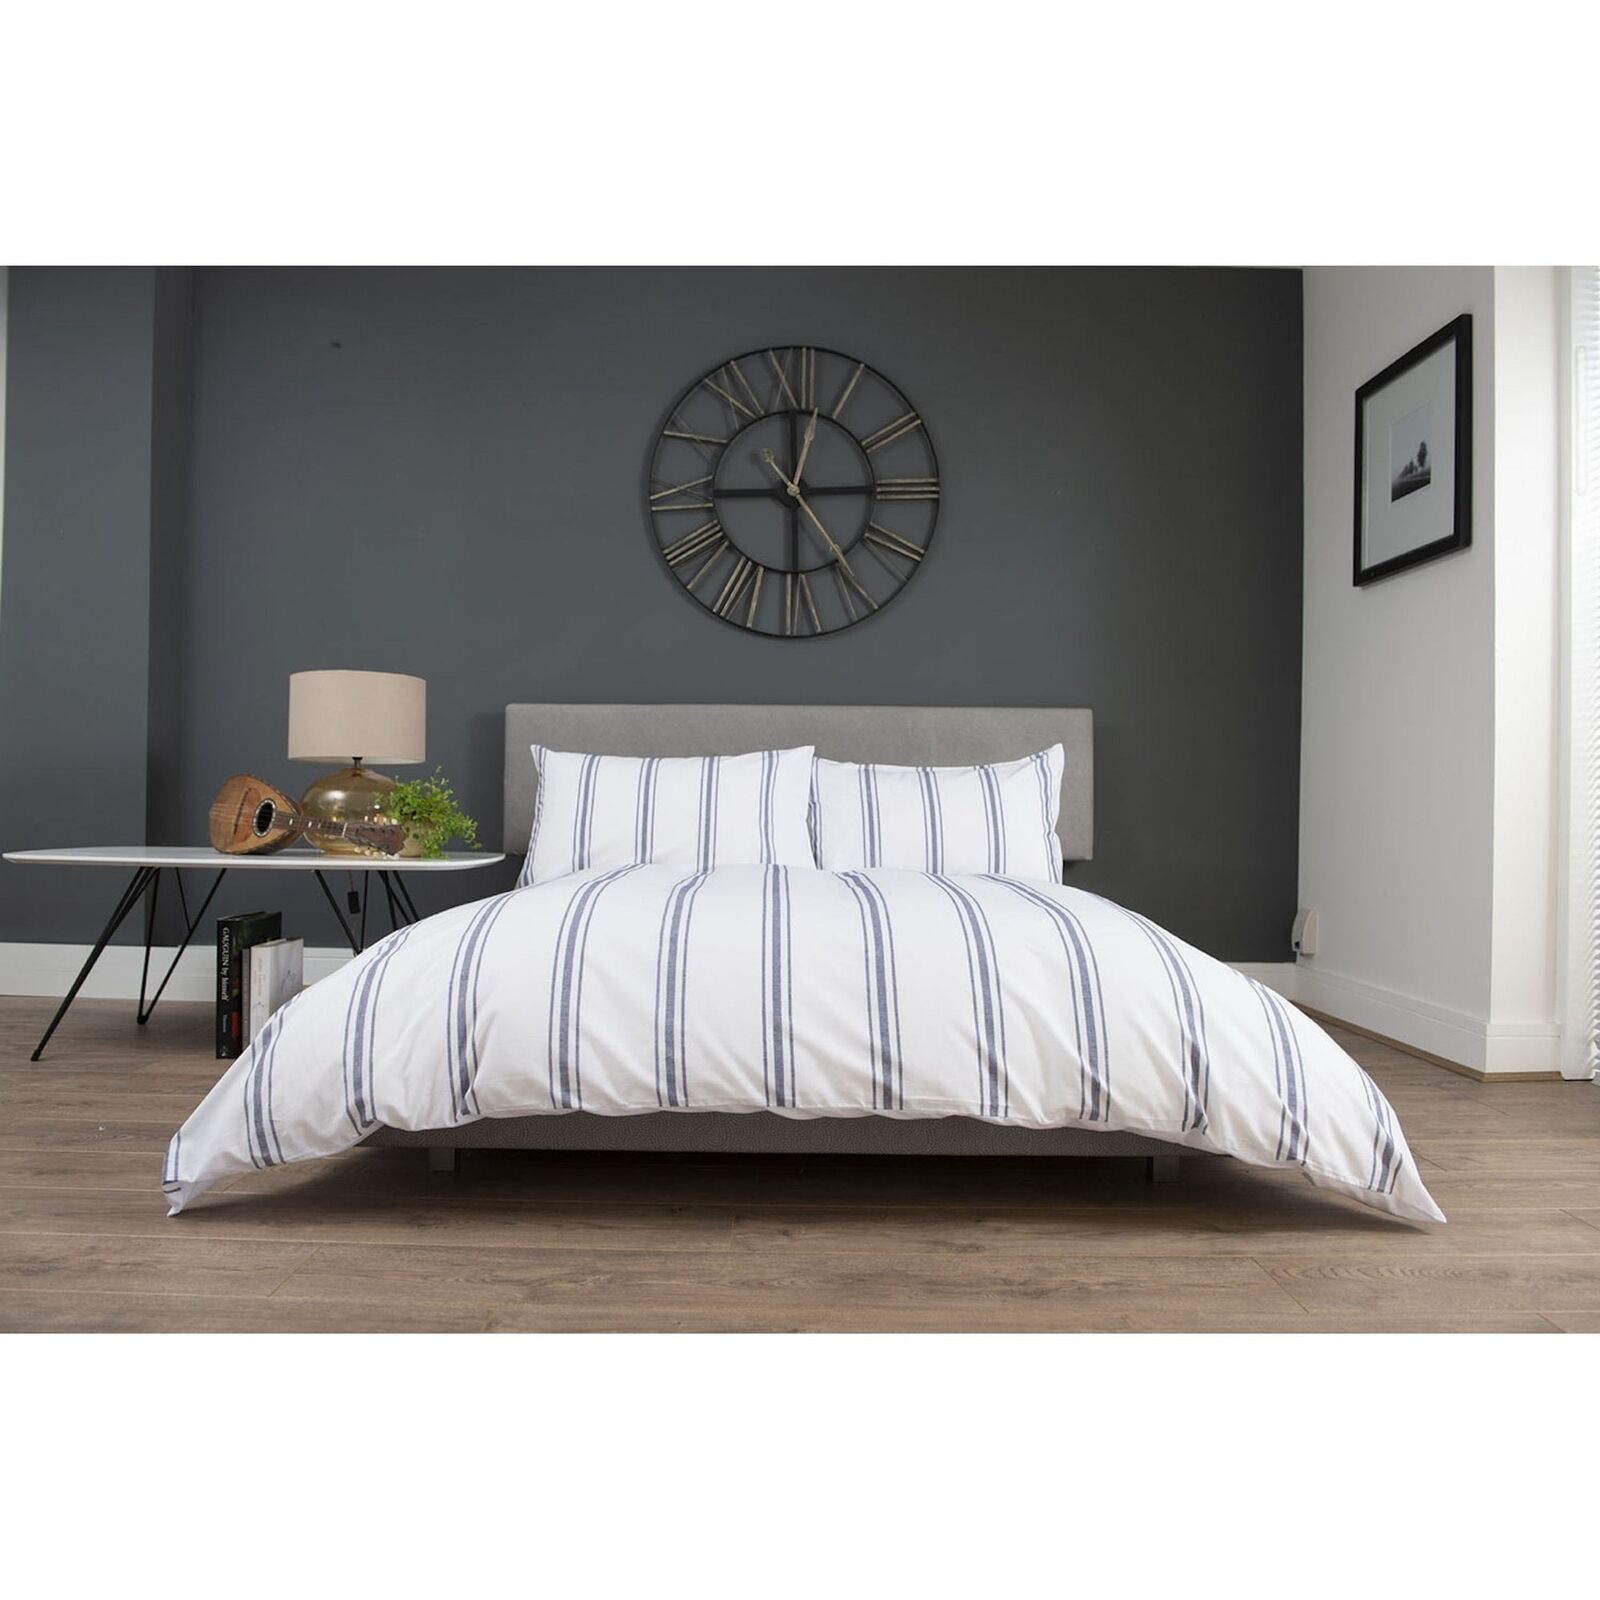 The Lyndon Company Toulouse 100% Cotton Yarn Dyed Duvet Set